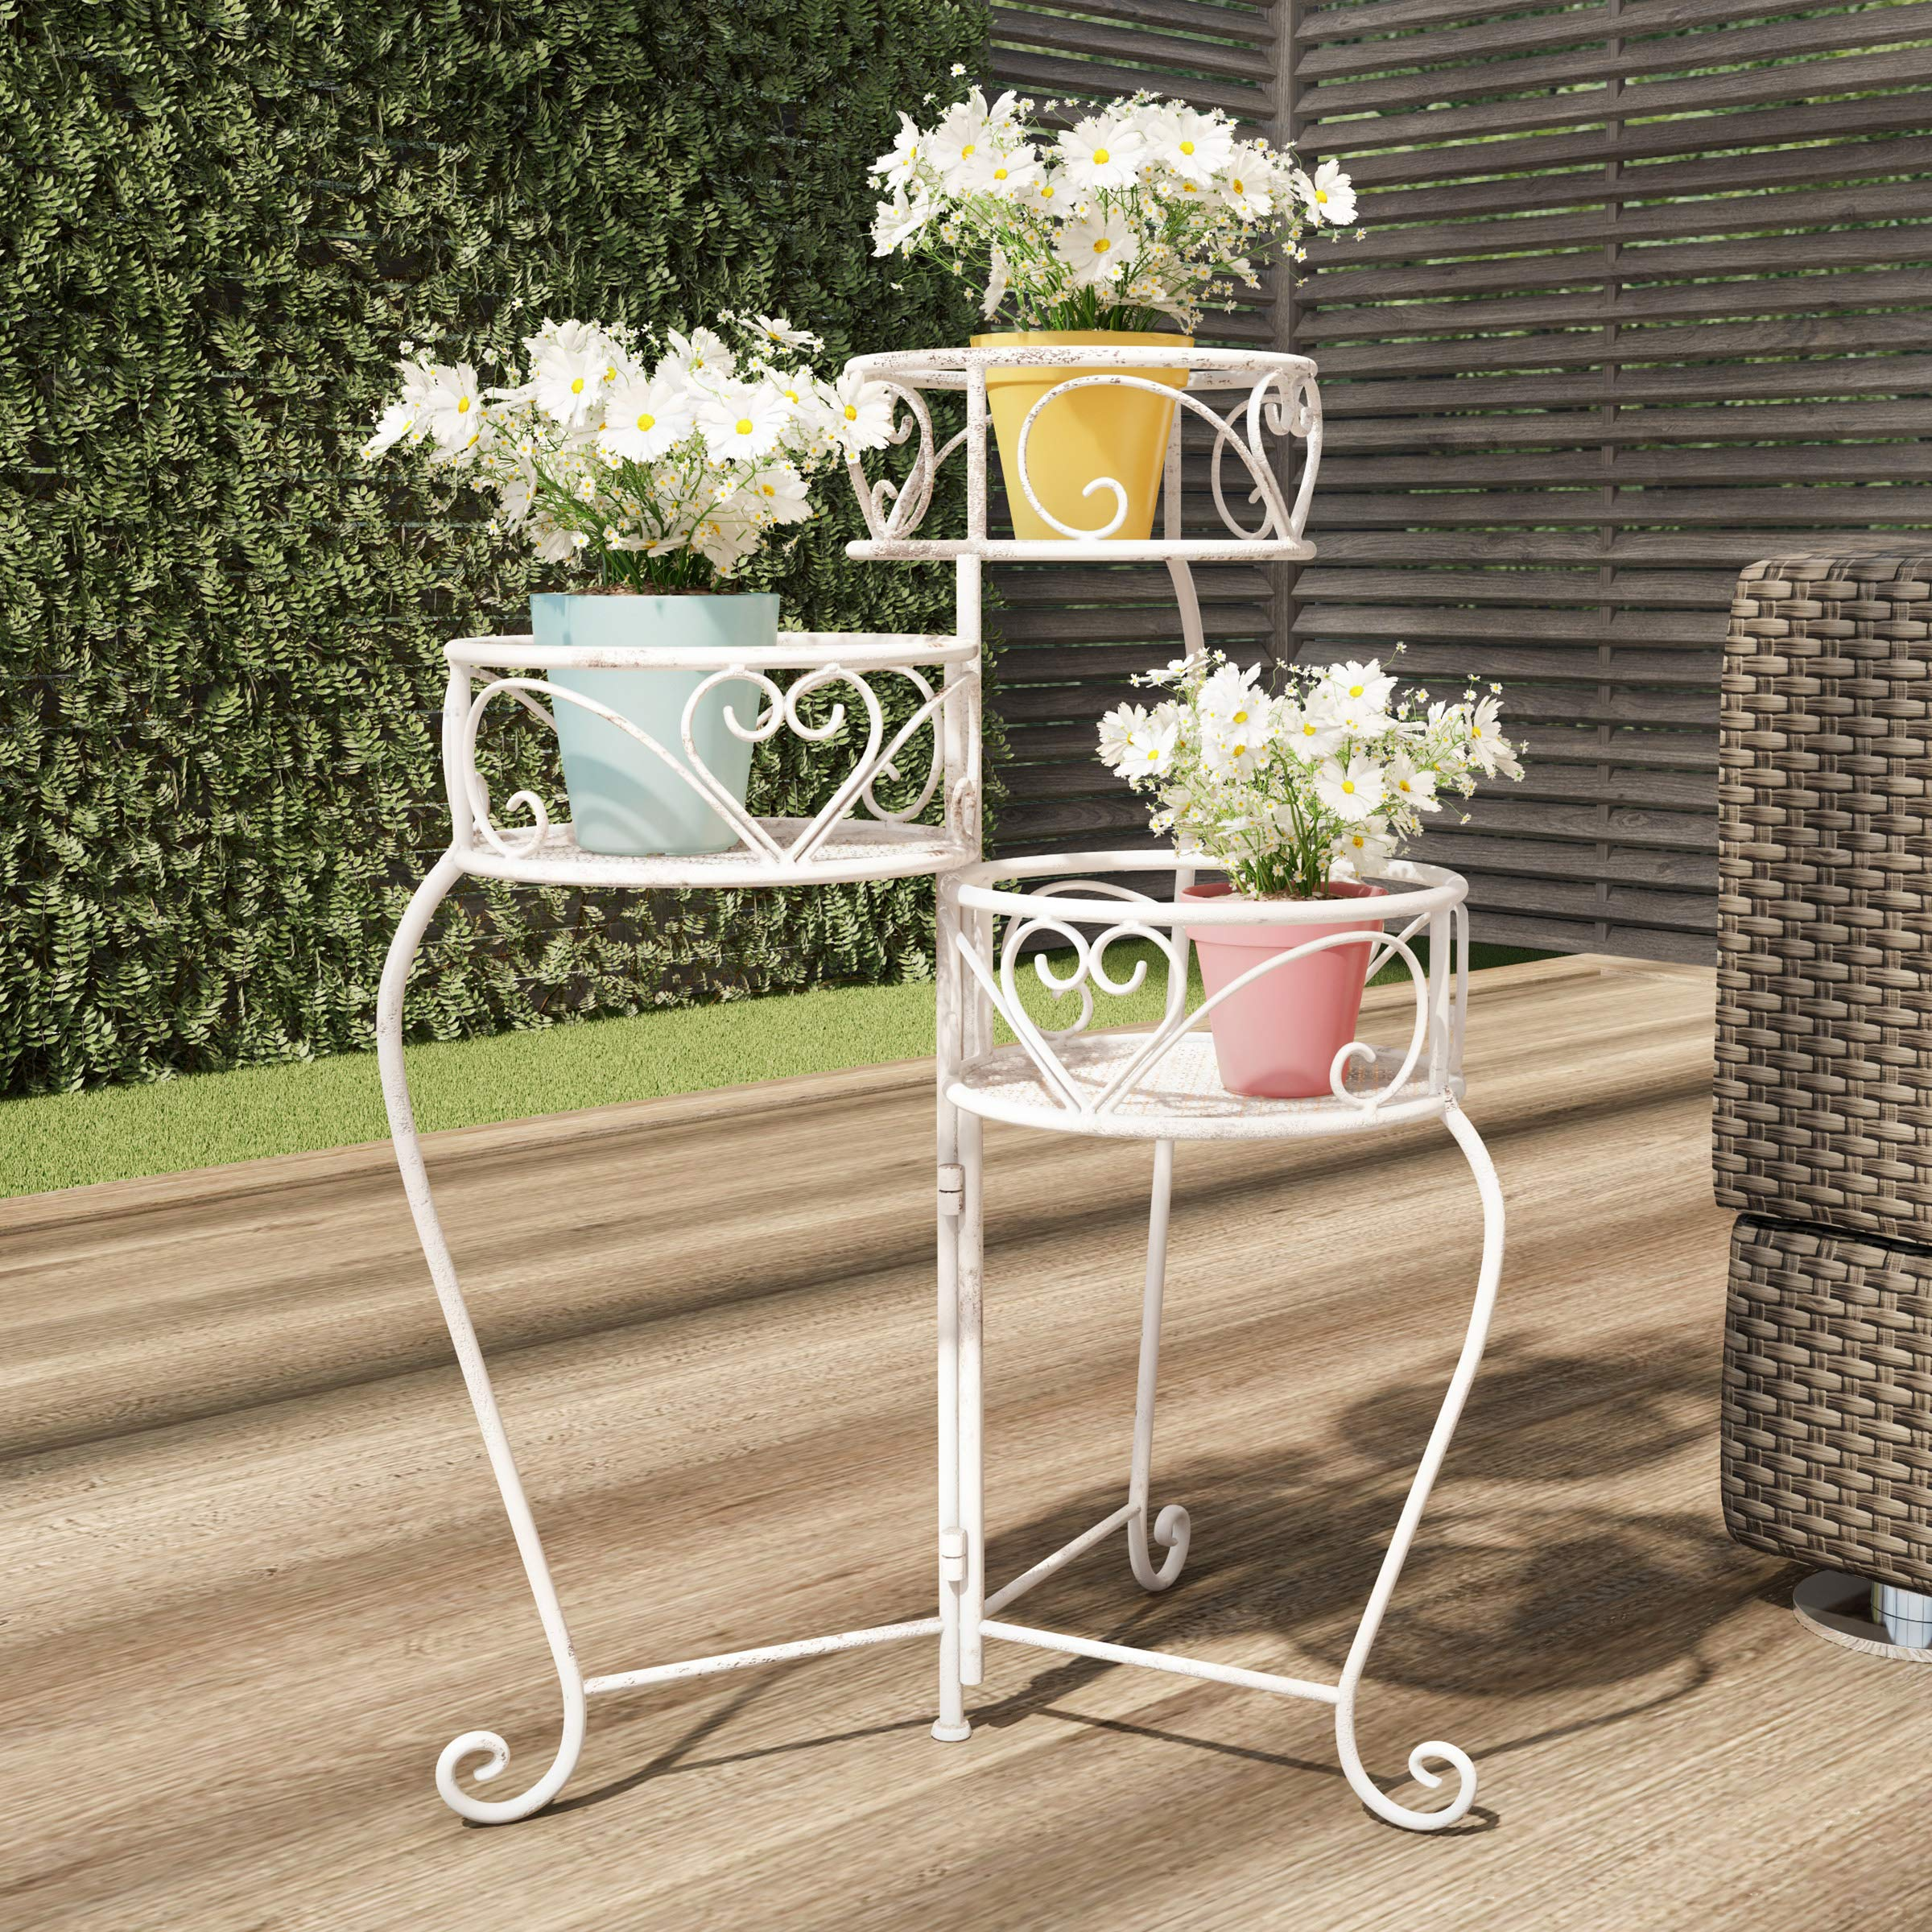 Pure Garden 50-LG1159 Plant Stand - 3-Tier Indoor or Outdoor Folding Wrought Iron Metal Home and Garden Display with Staggered Shelves (Antique White)